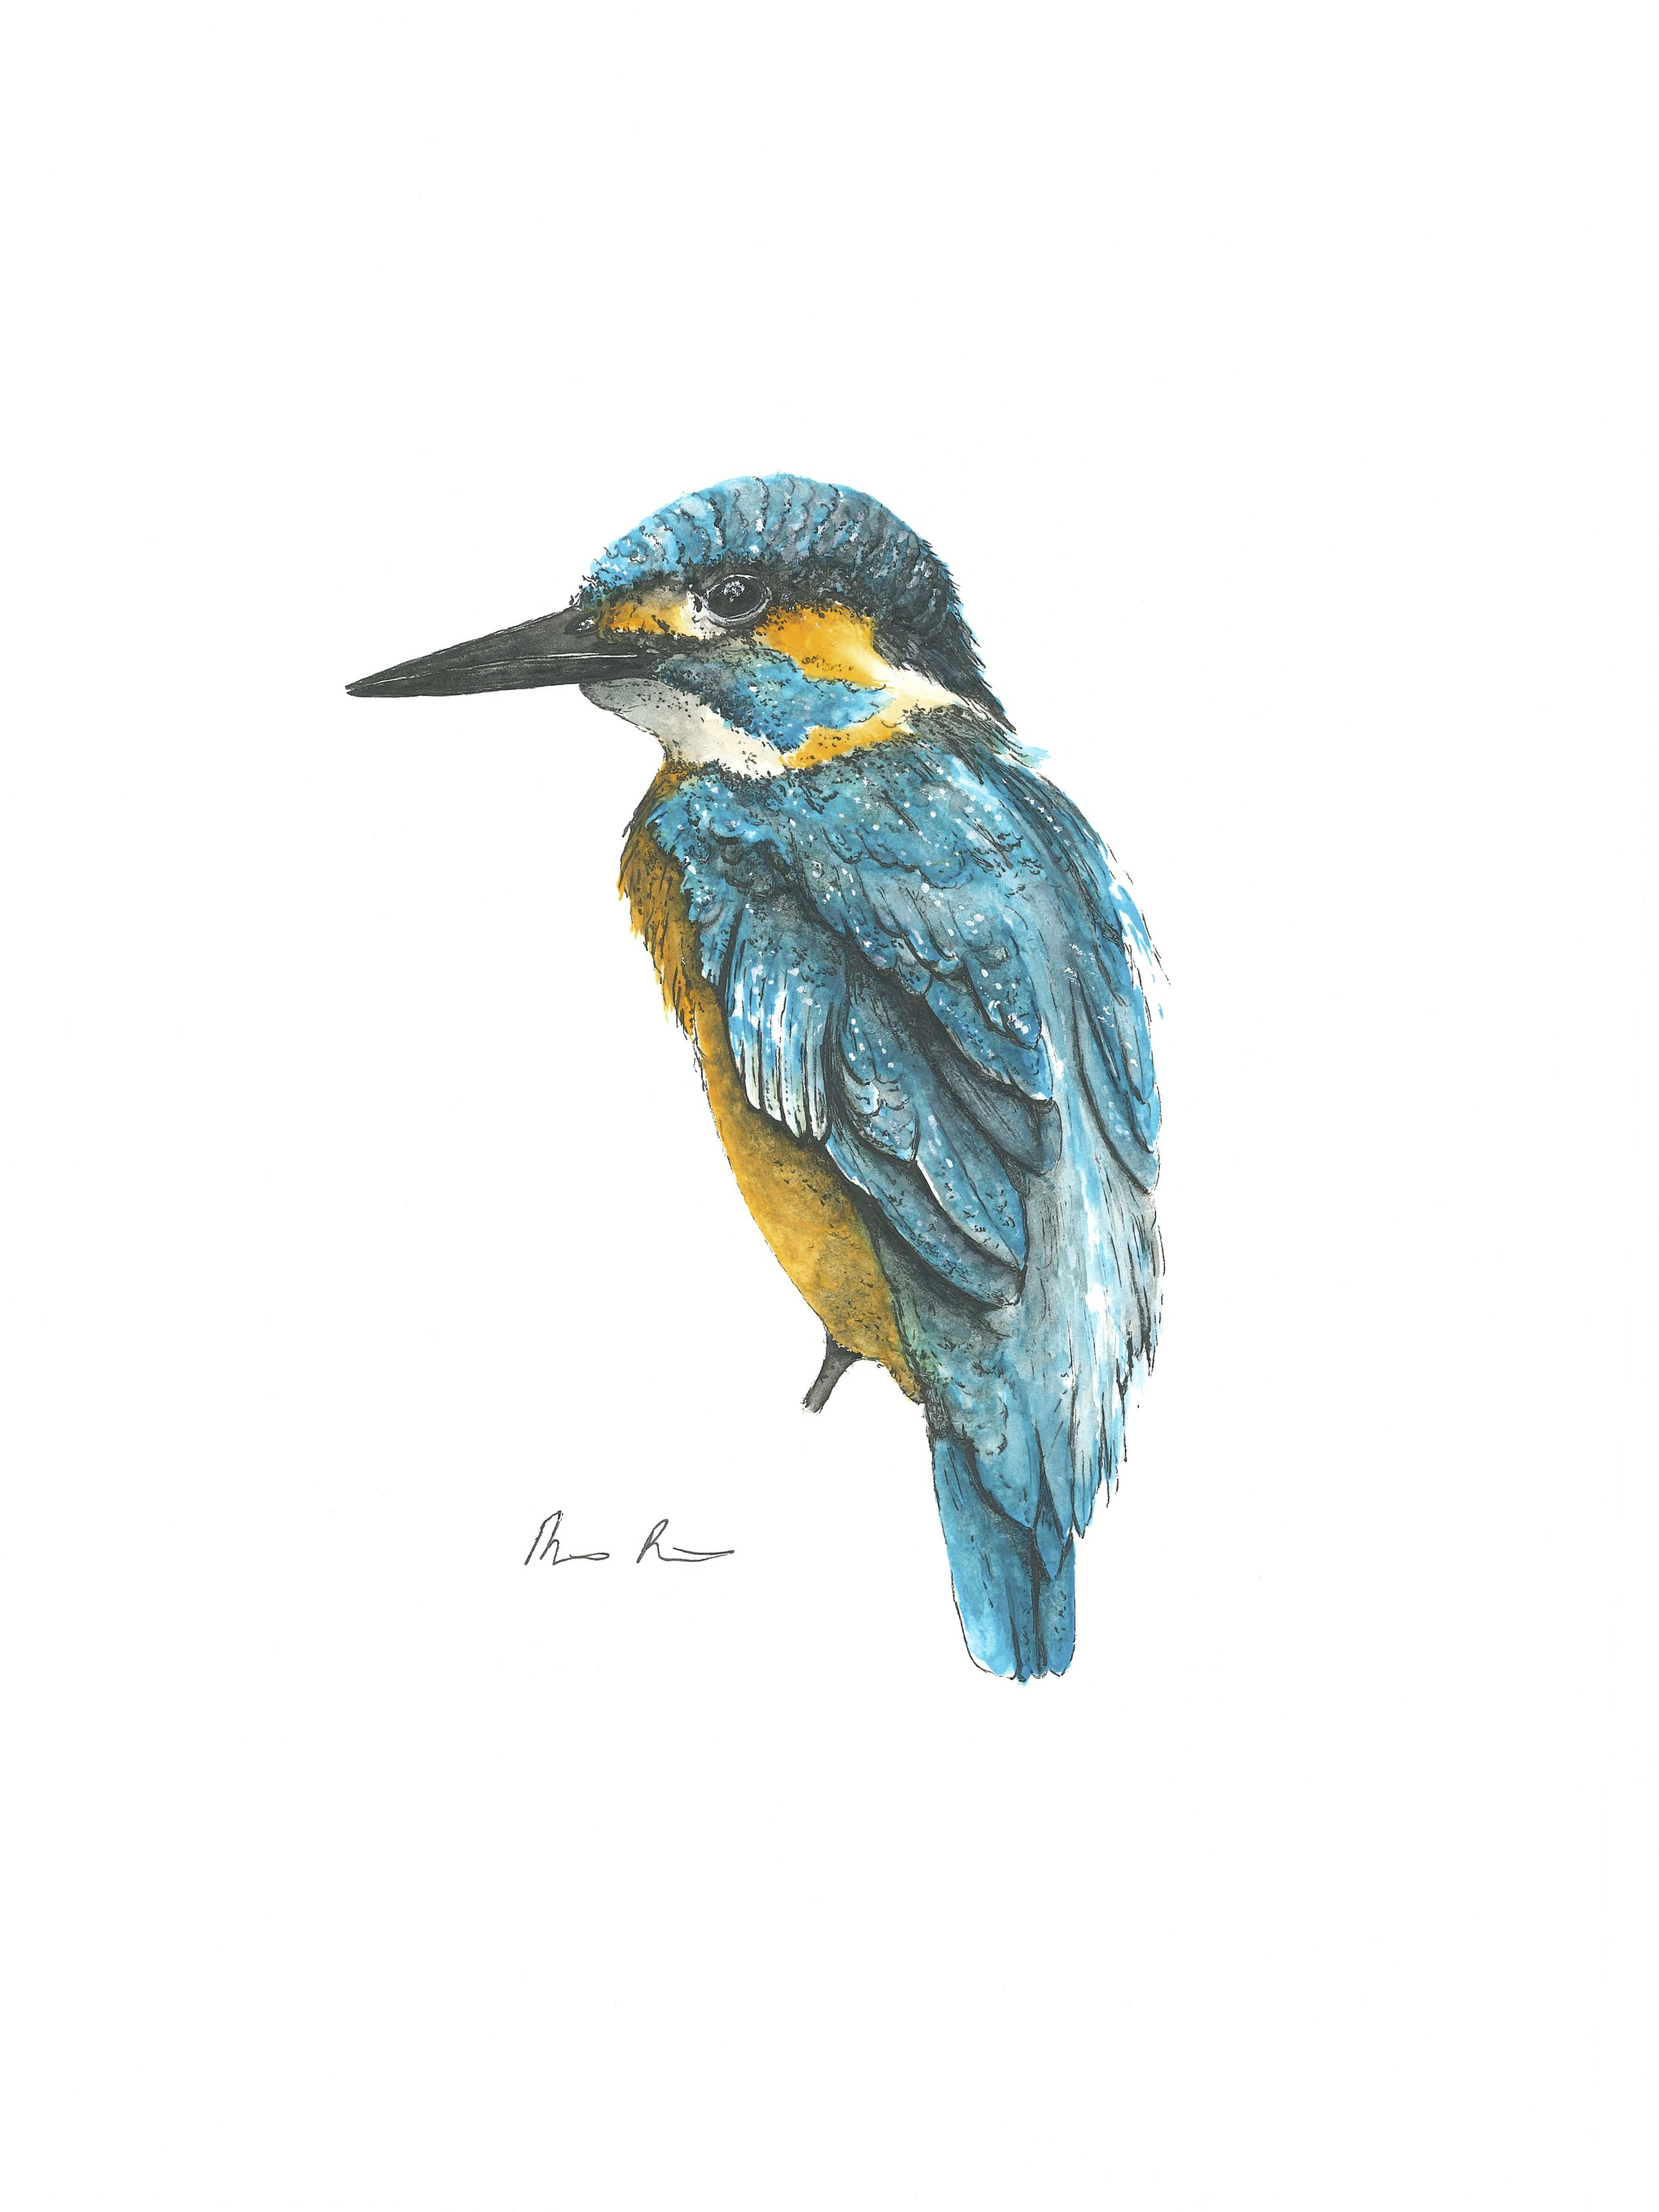 King Fisher - 9